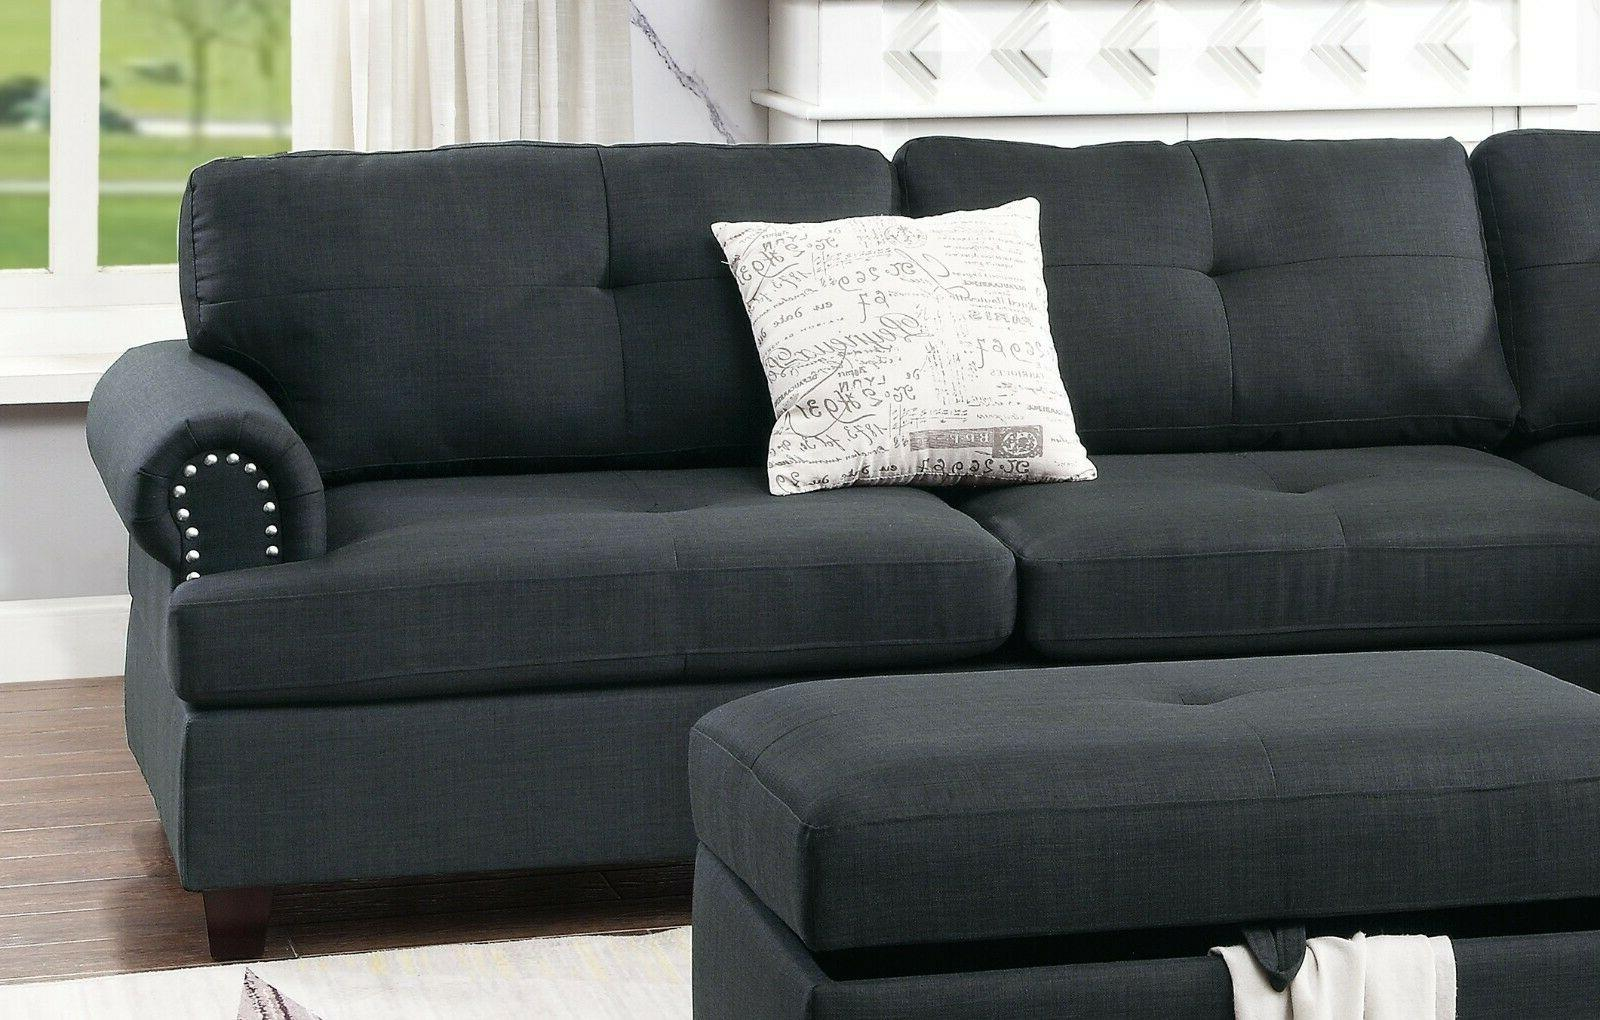 Modern Sectional Sofa Shaped Couch Tufted Stud Arm Ash Black